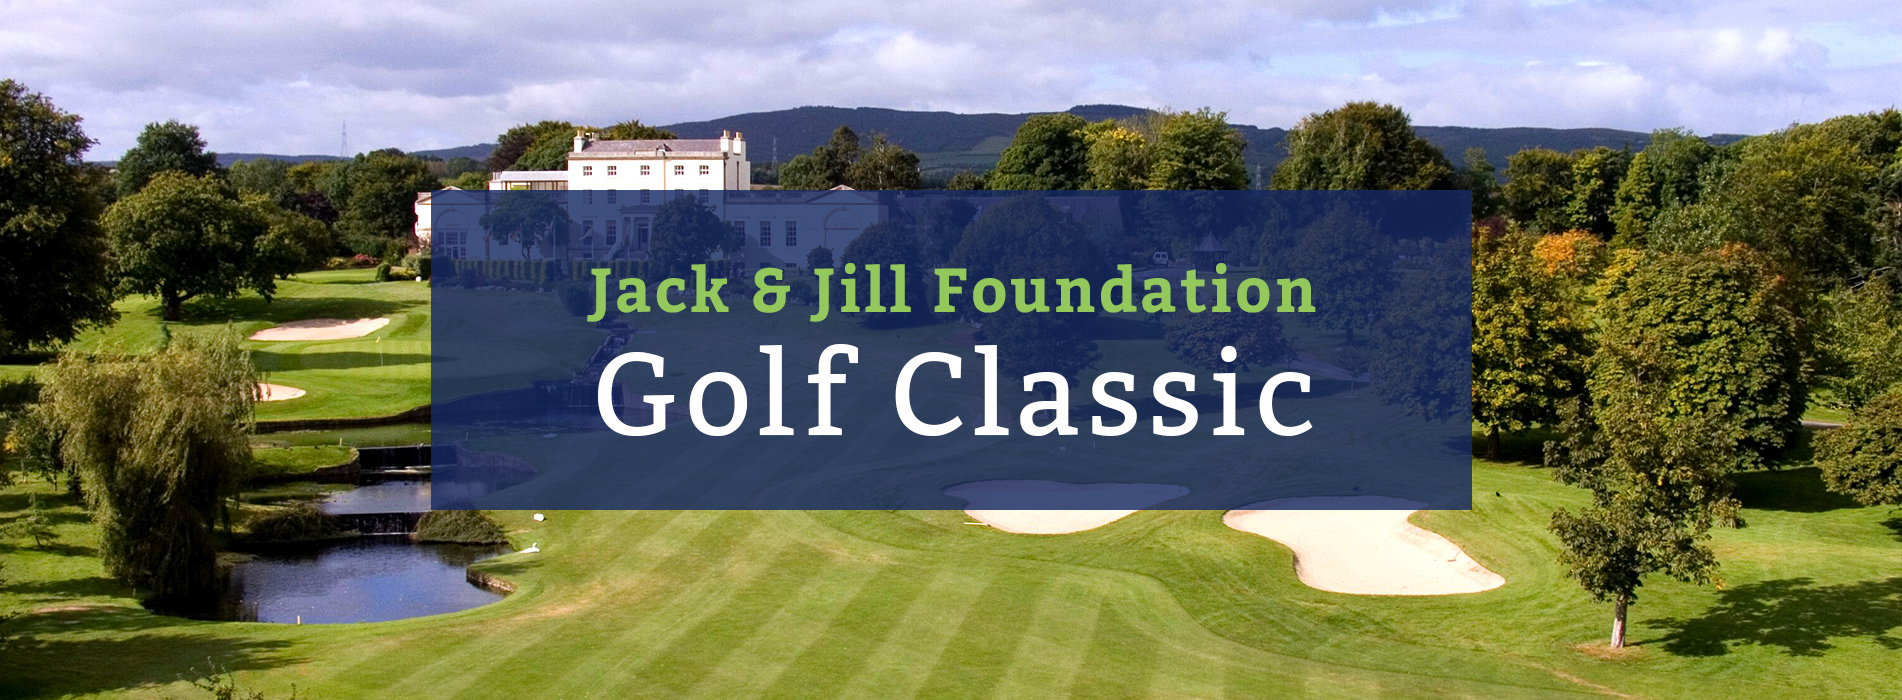 Golf Classic Banner